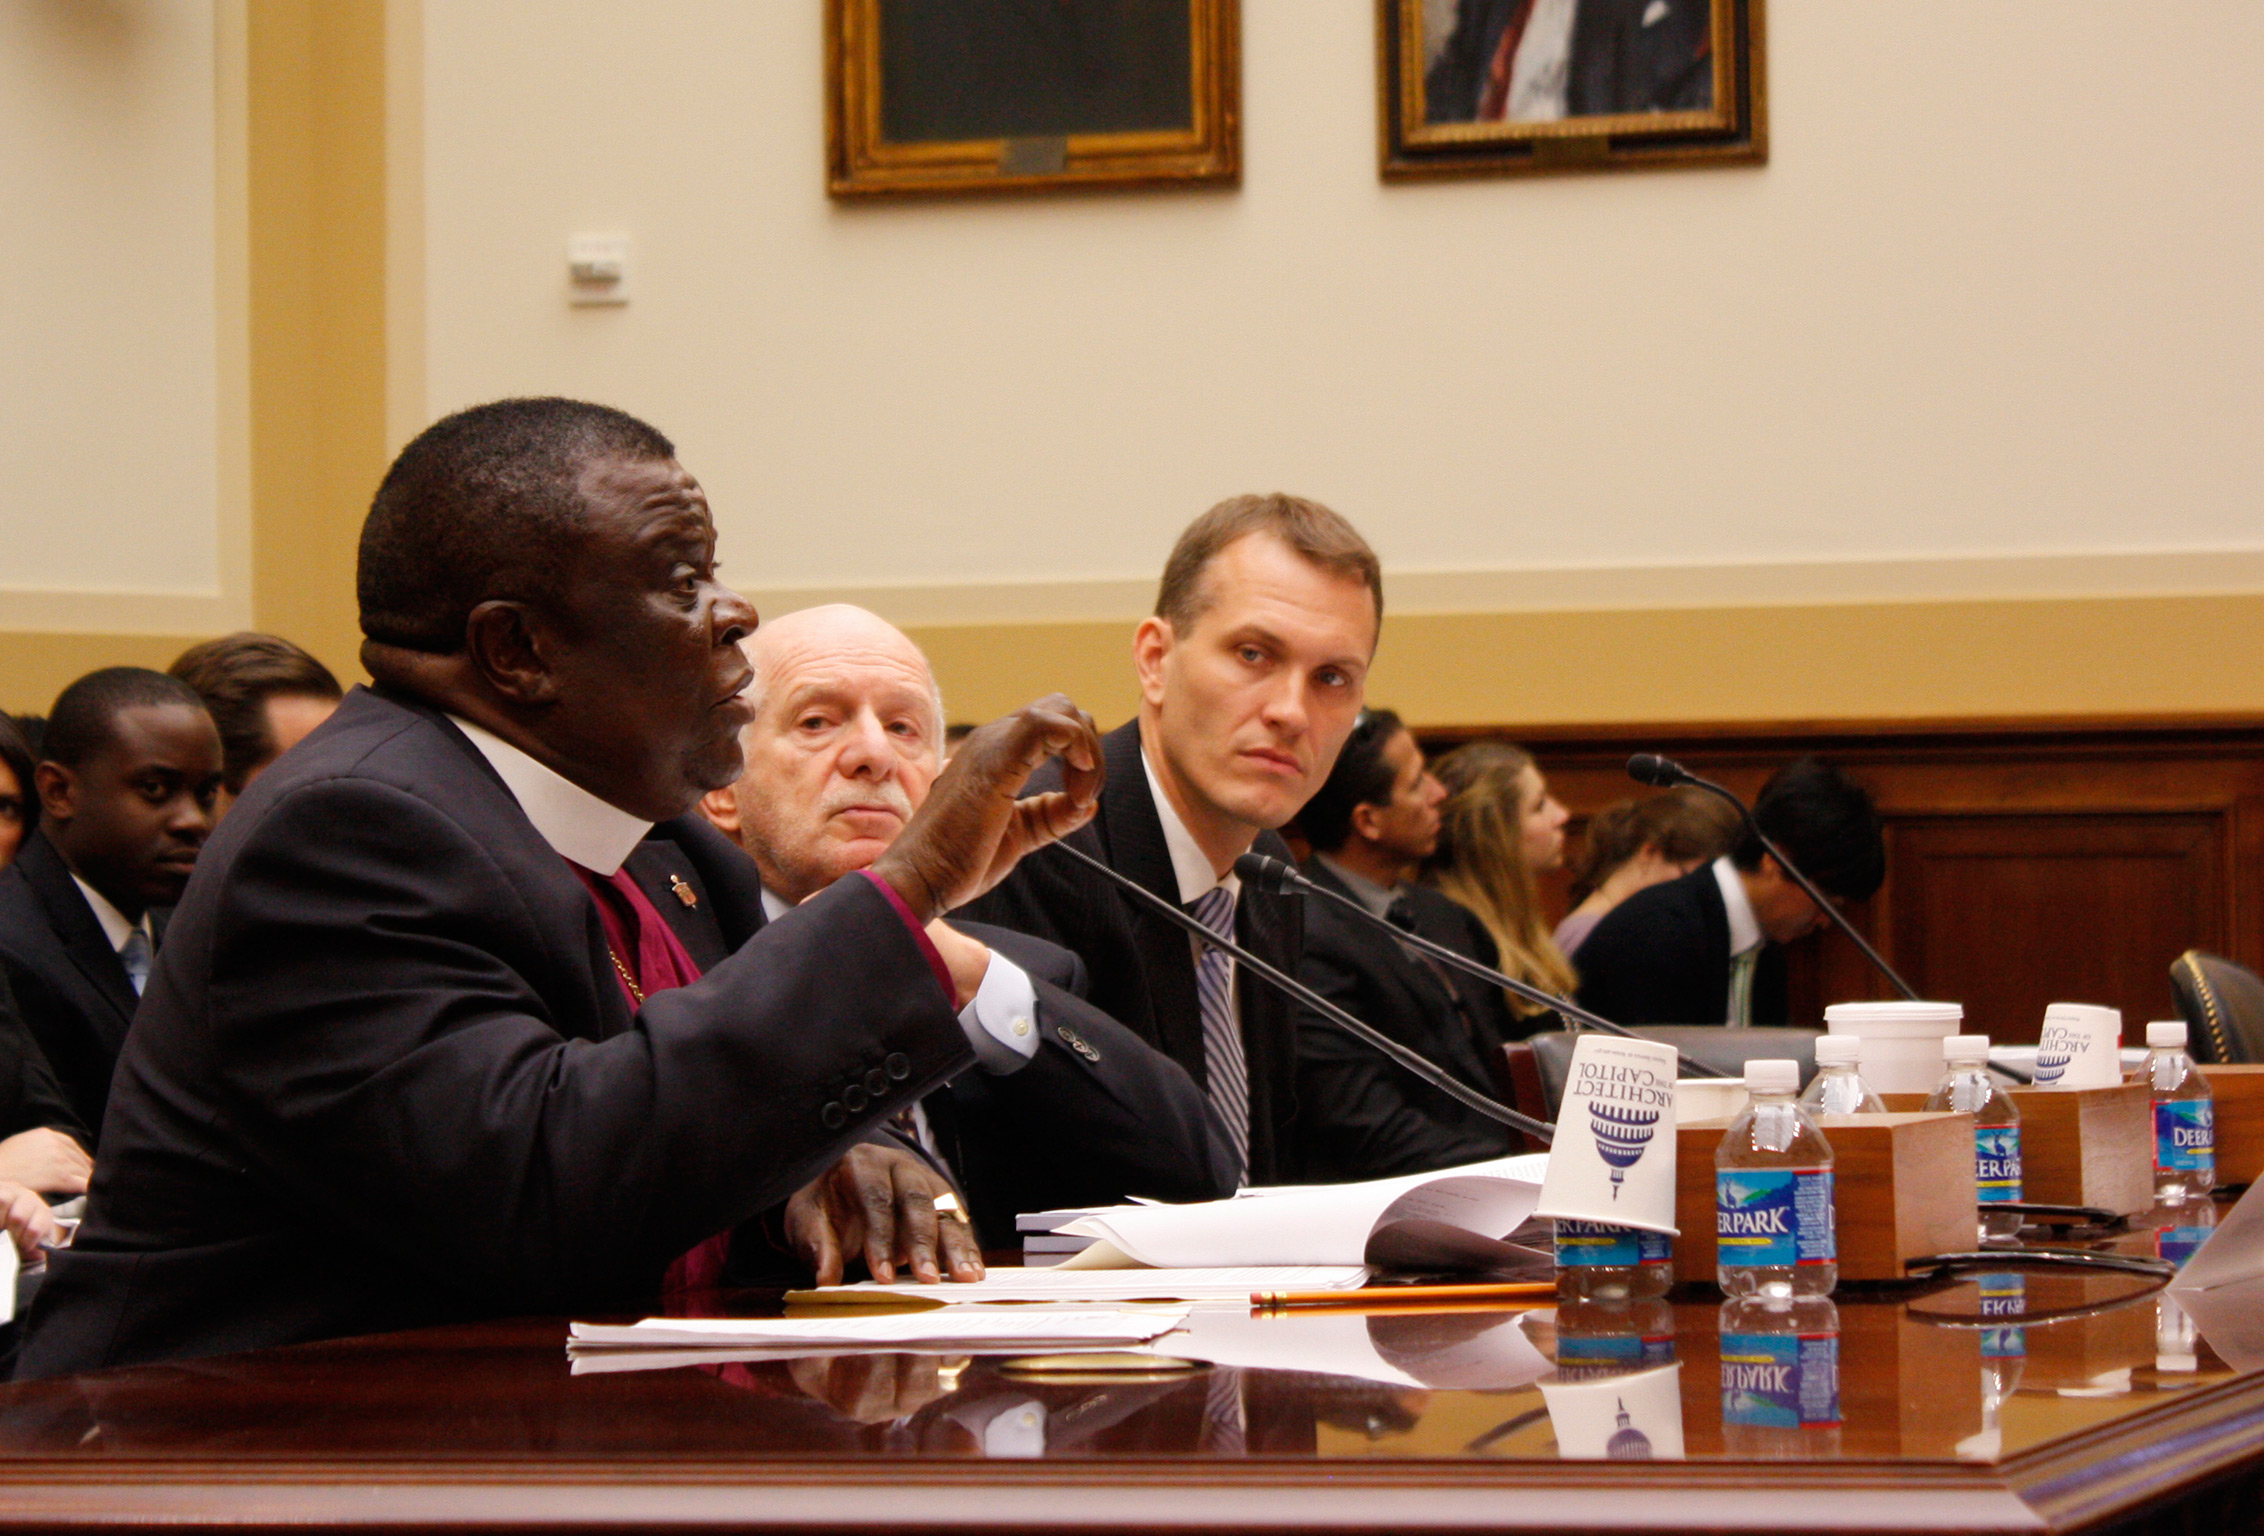 House Subcommittee Examines Rwanda's Involvement in M23, Highlights U.S. Role in Ending the Conflict